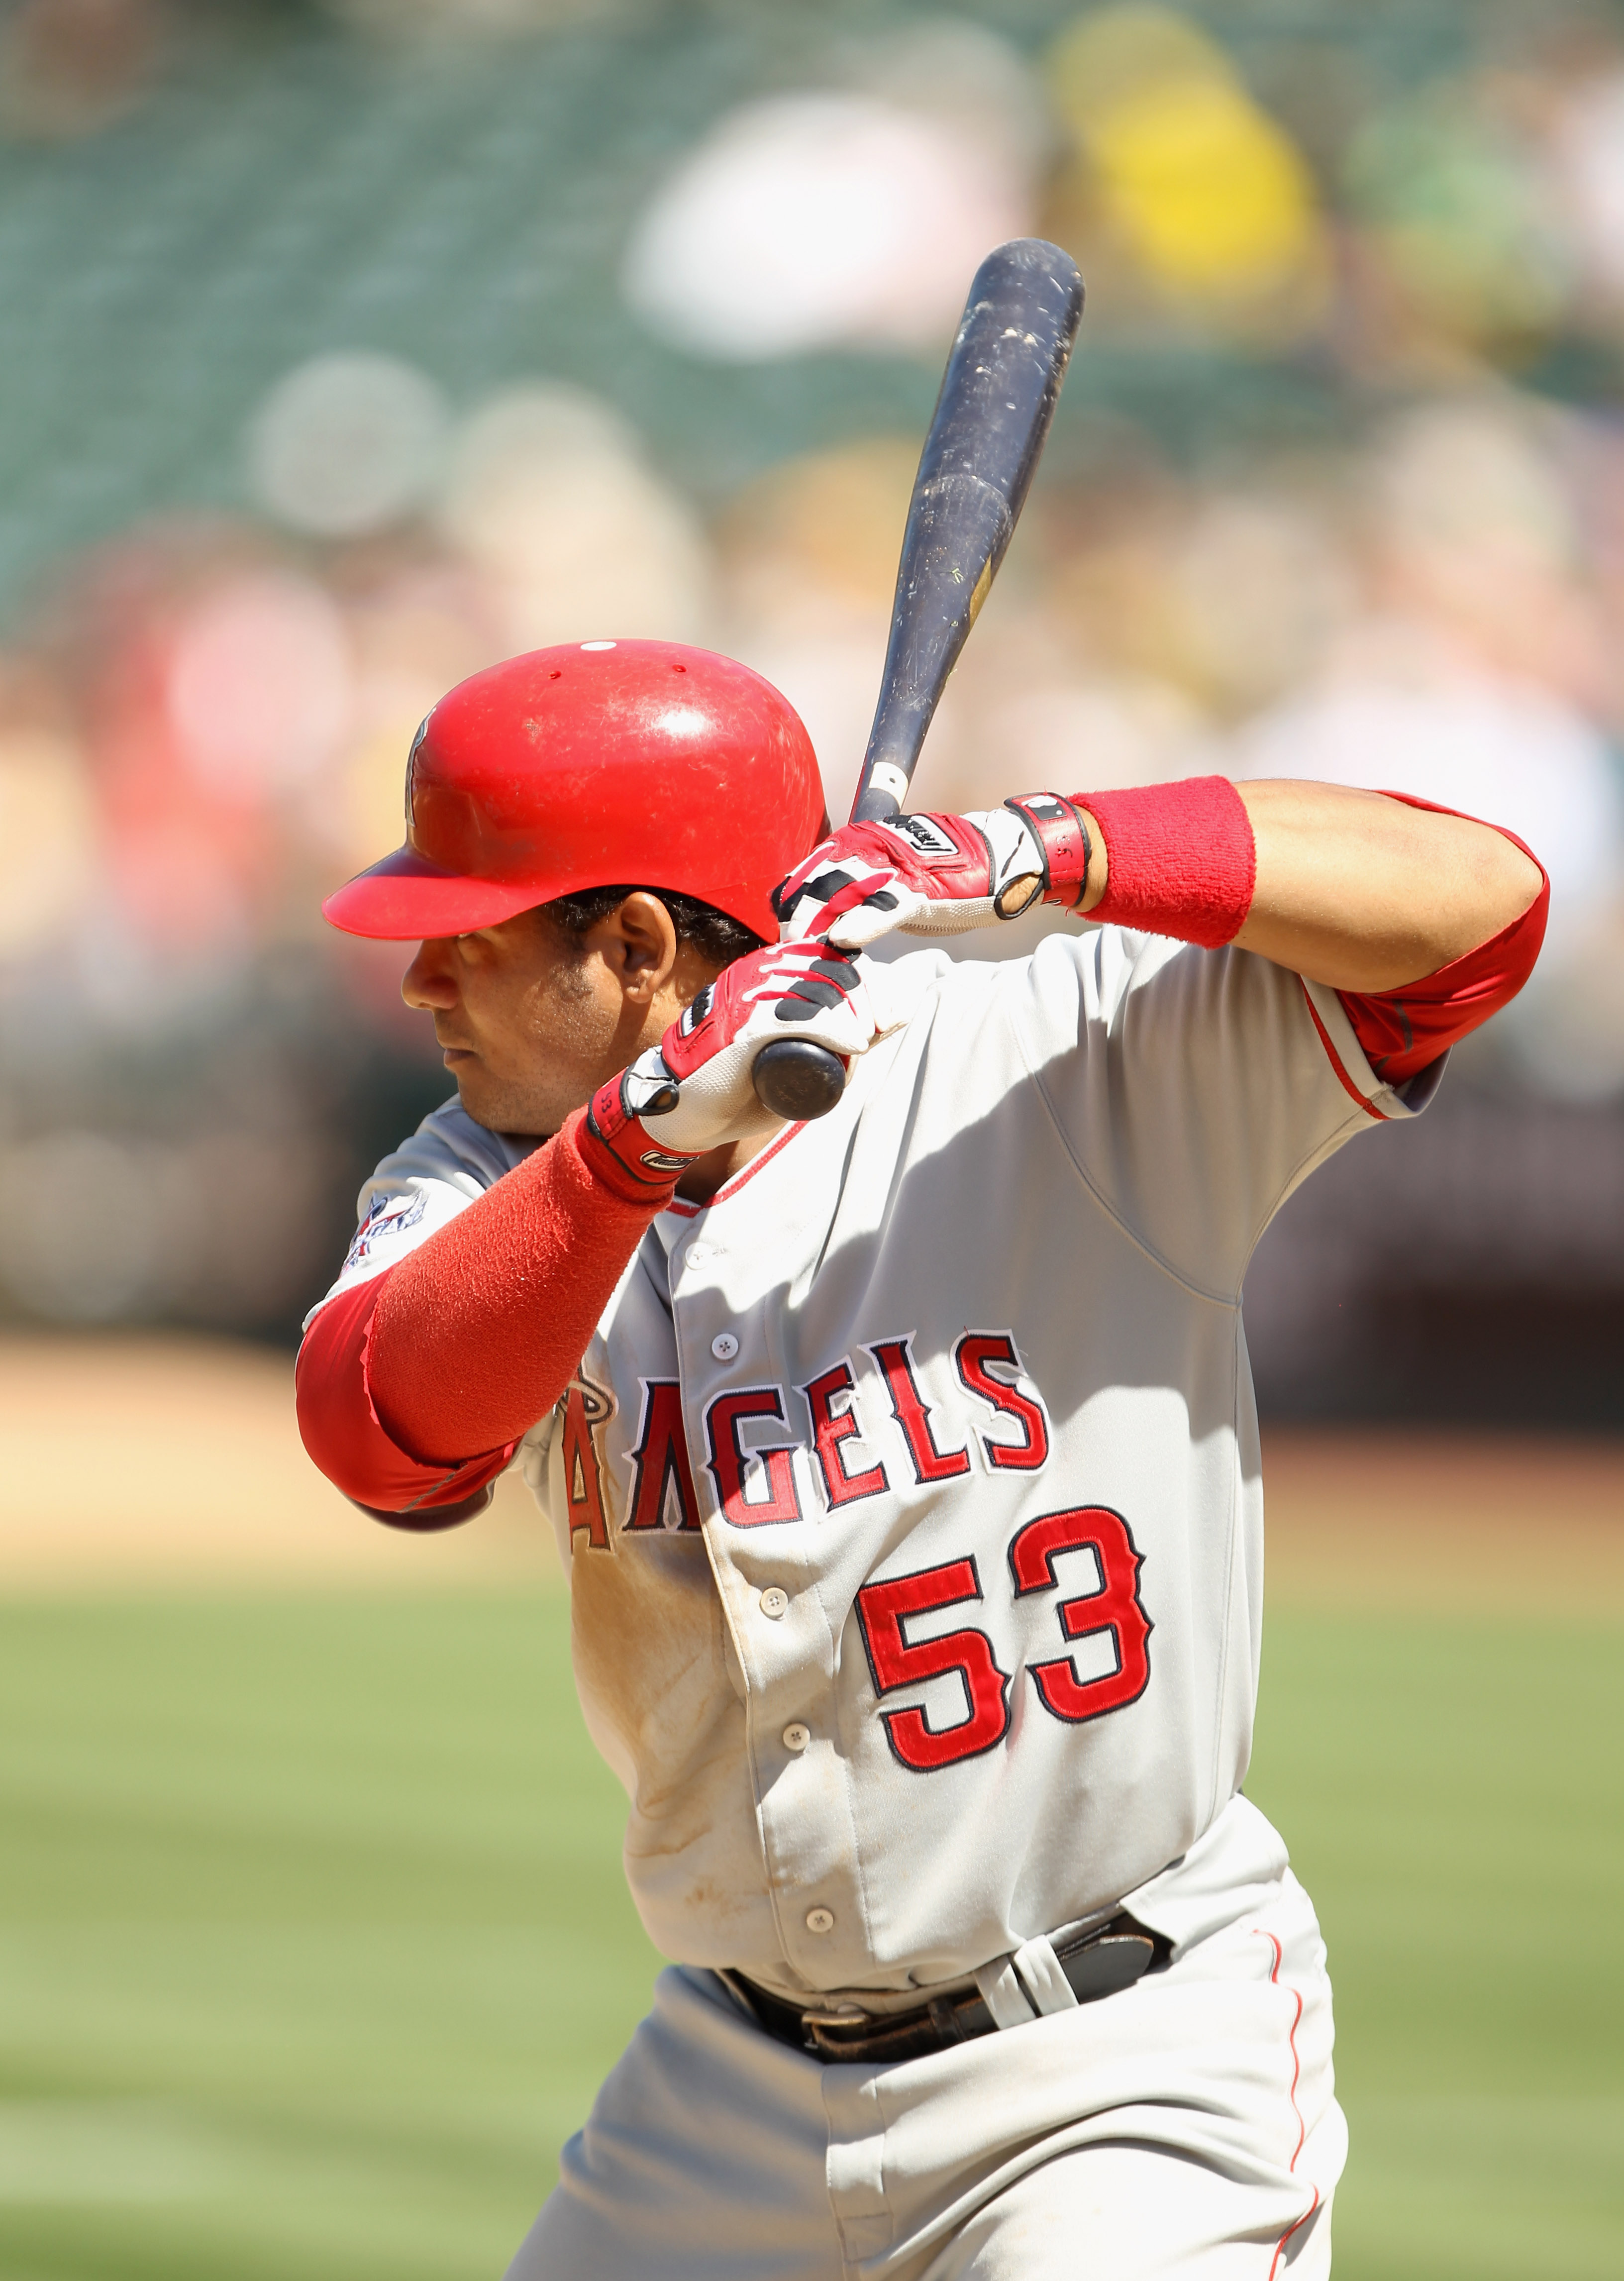 The Angels could be looking to put Bobby Abreu back into the field.